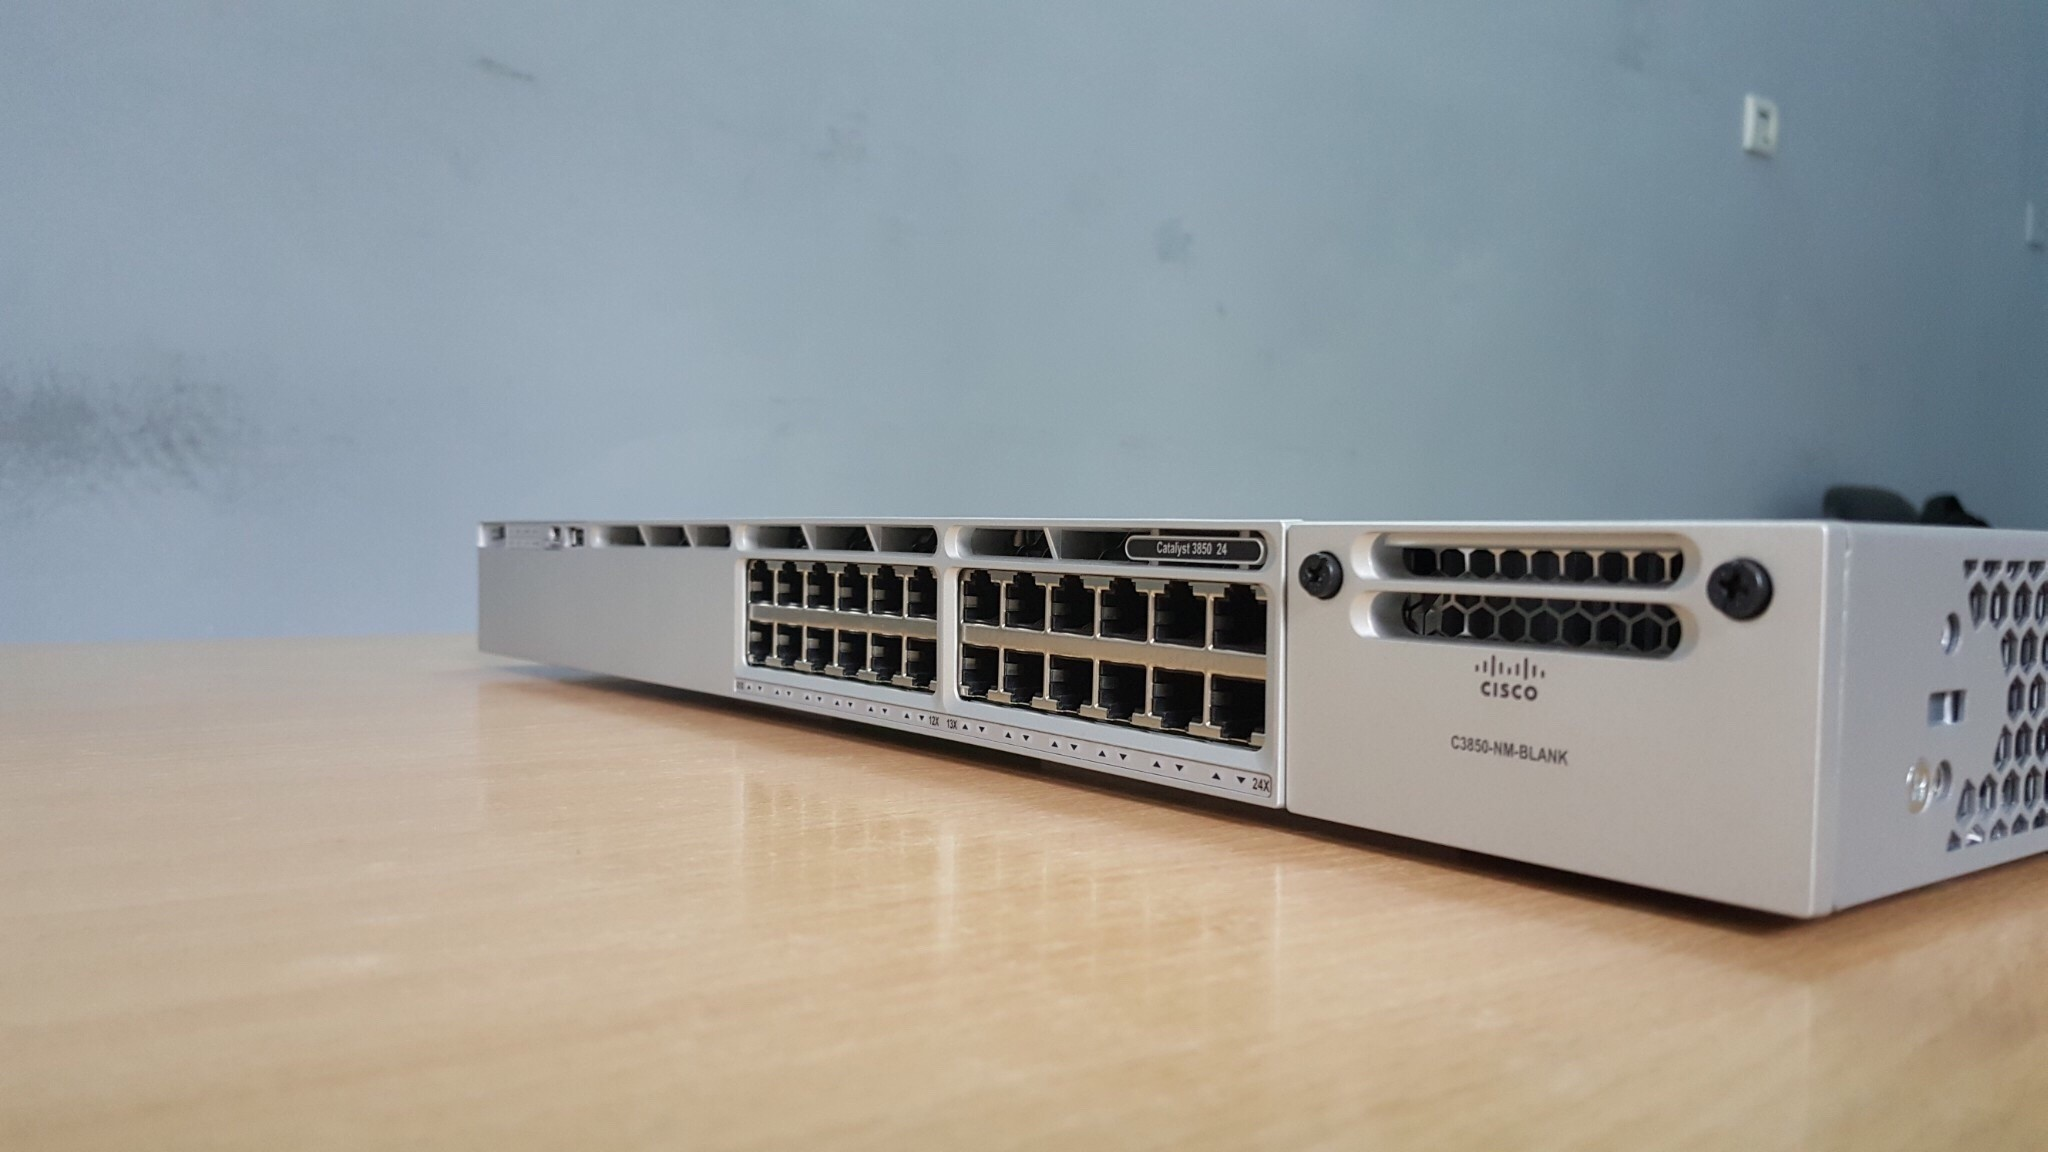 core switch cisco